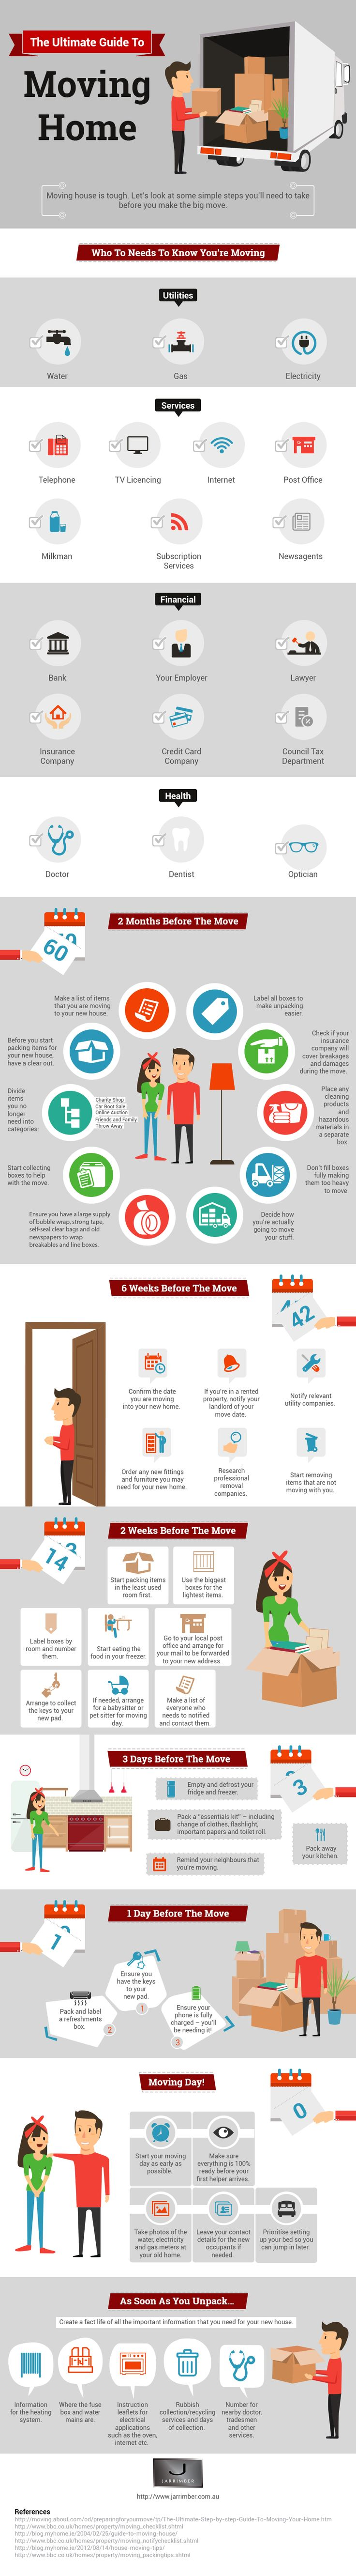 This infographic courtesy of Jarrimber offers readers some simple tips and checklists that may help stay organized during their next big move.